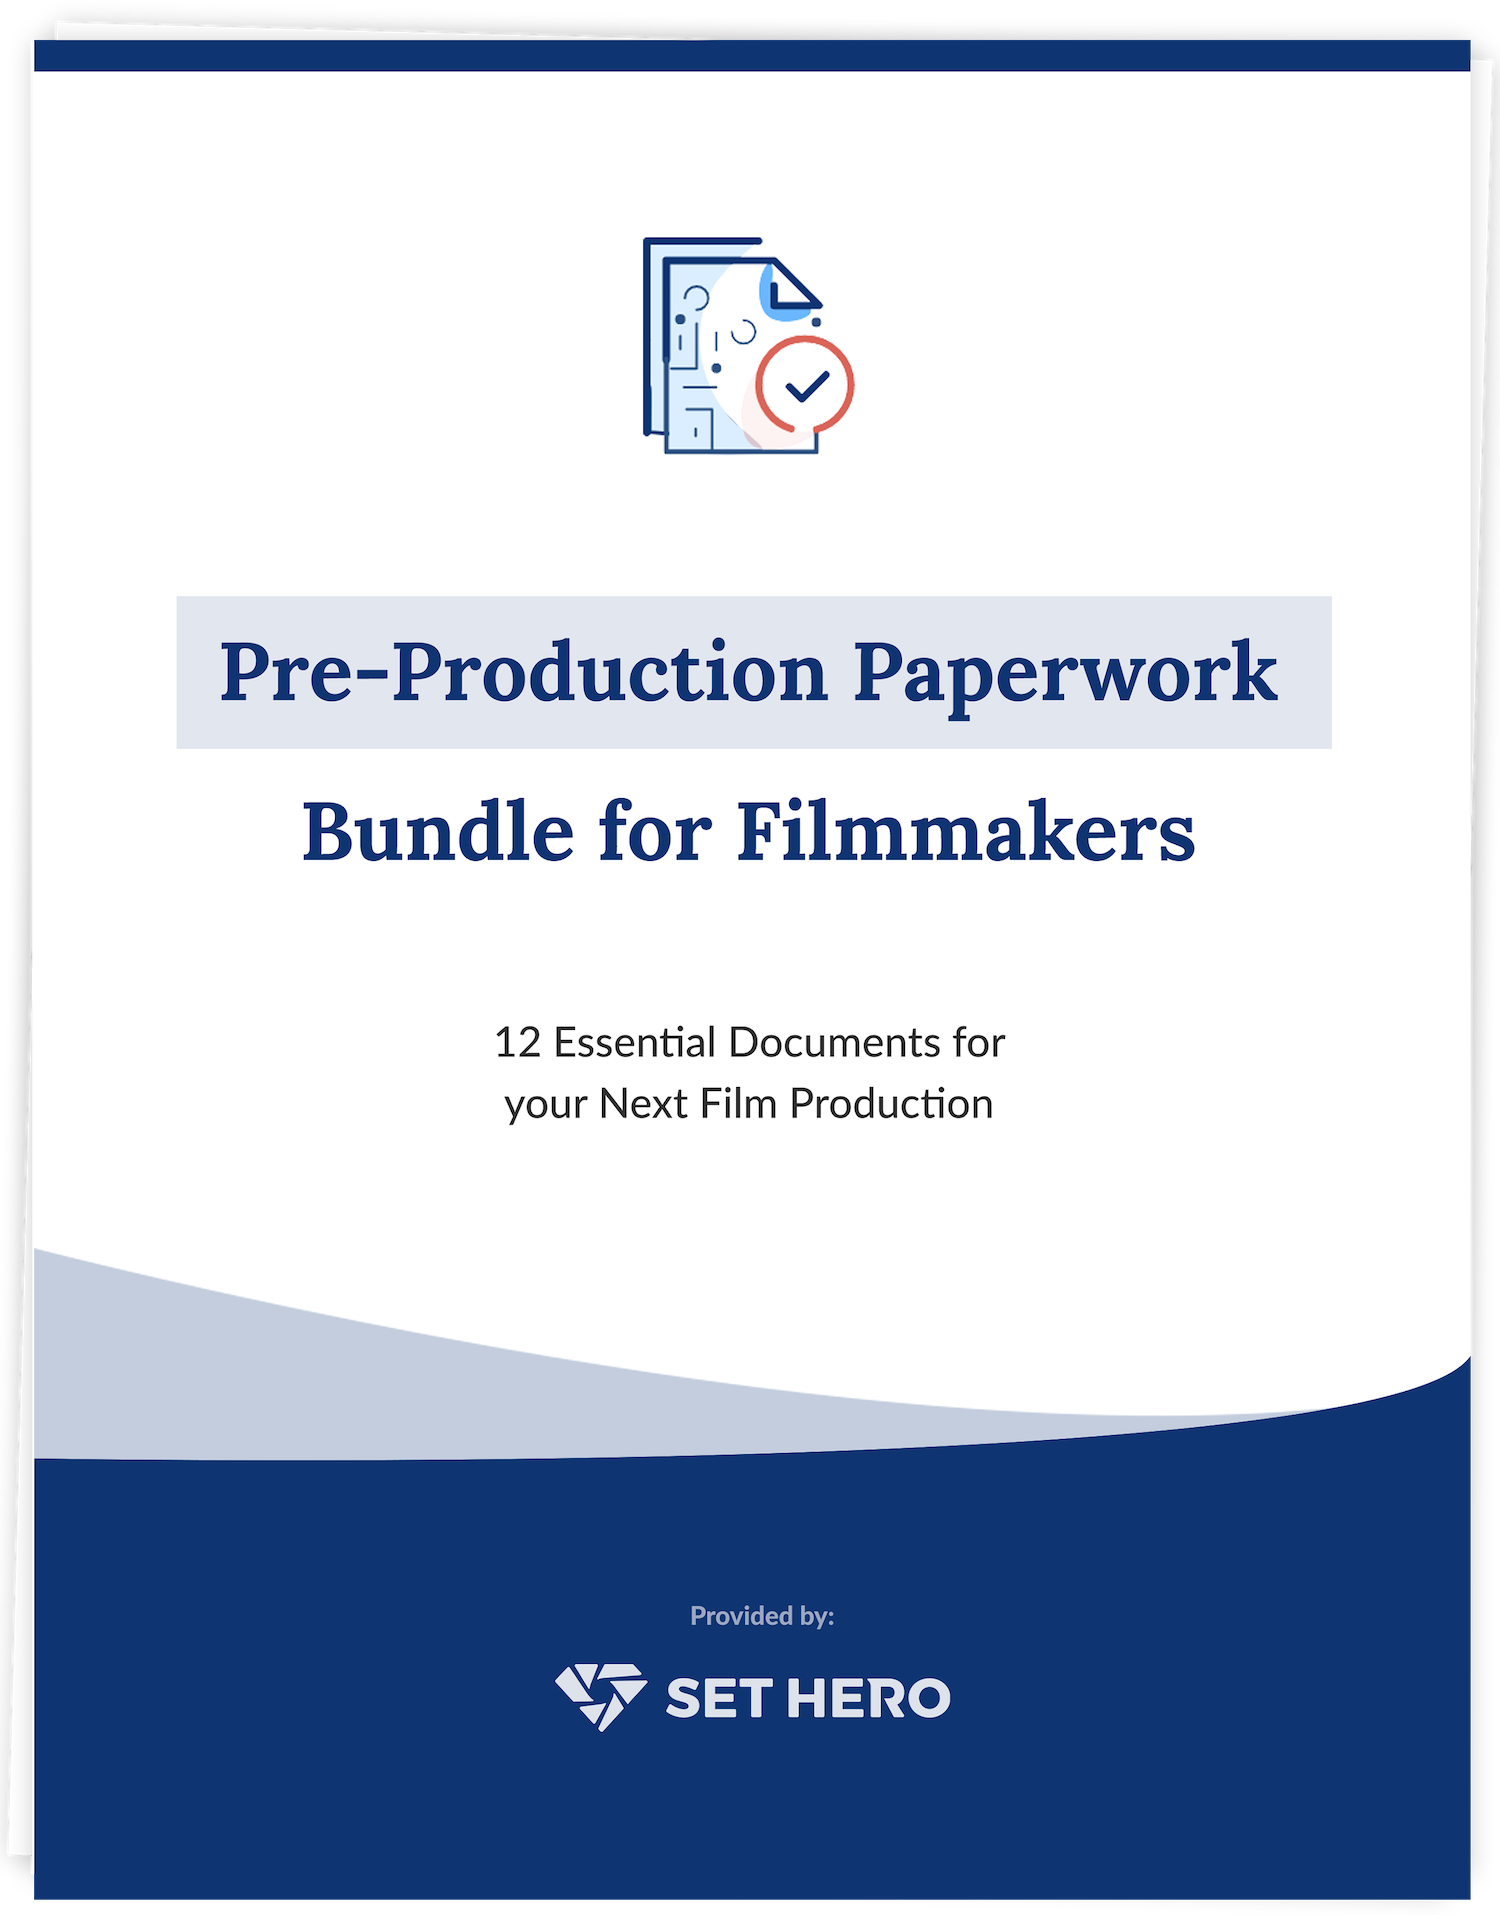 Filmmaker Pre-Production Template Bundle Download